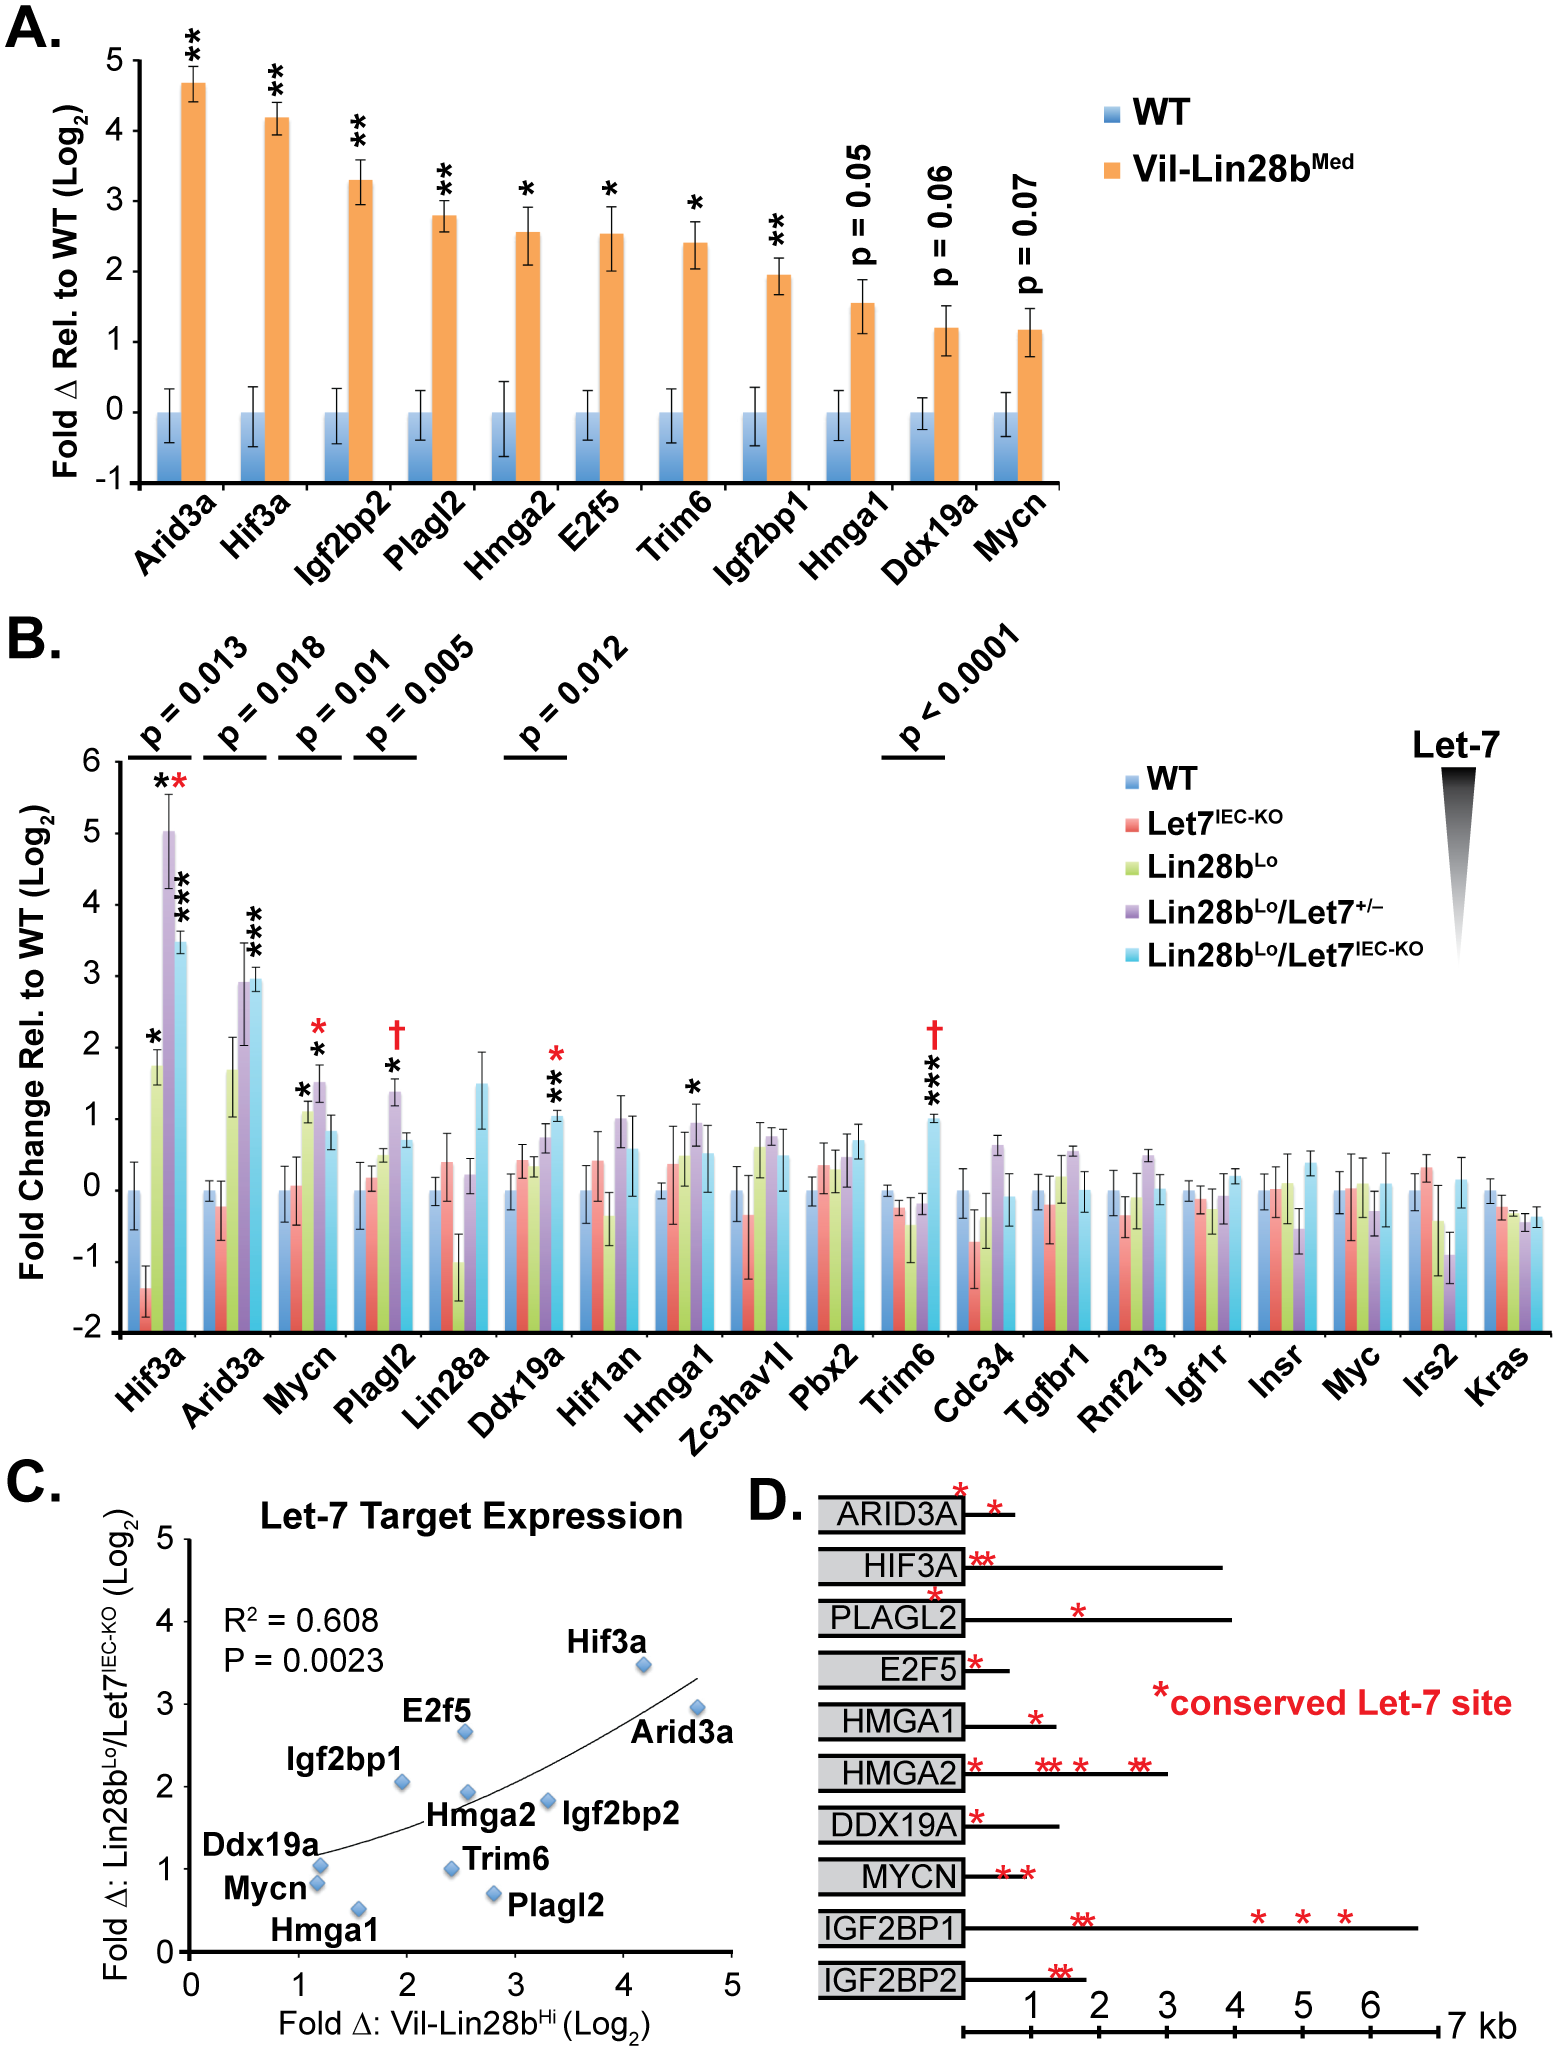 Quantification of Let-7 target mRNA levels in intestinal epithelium crypts.